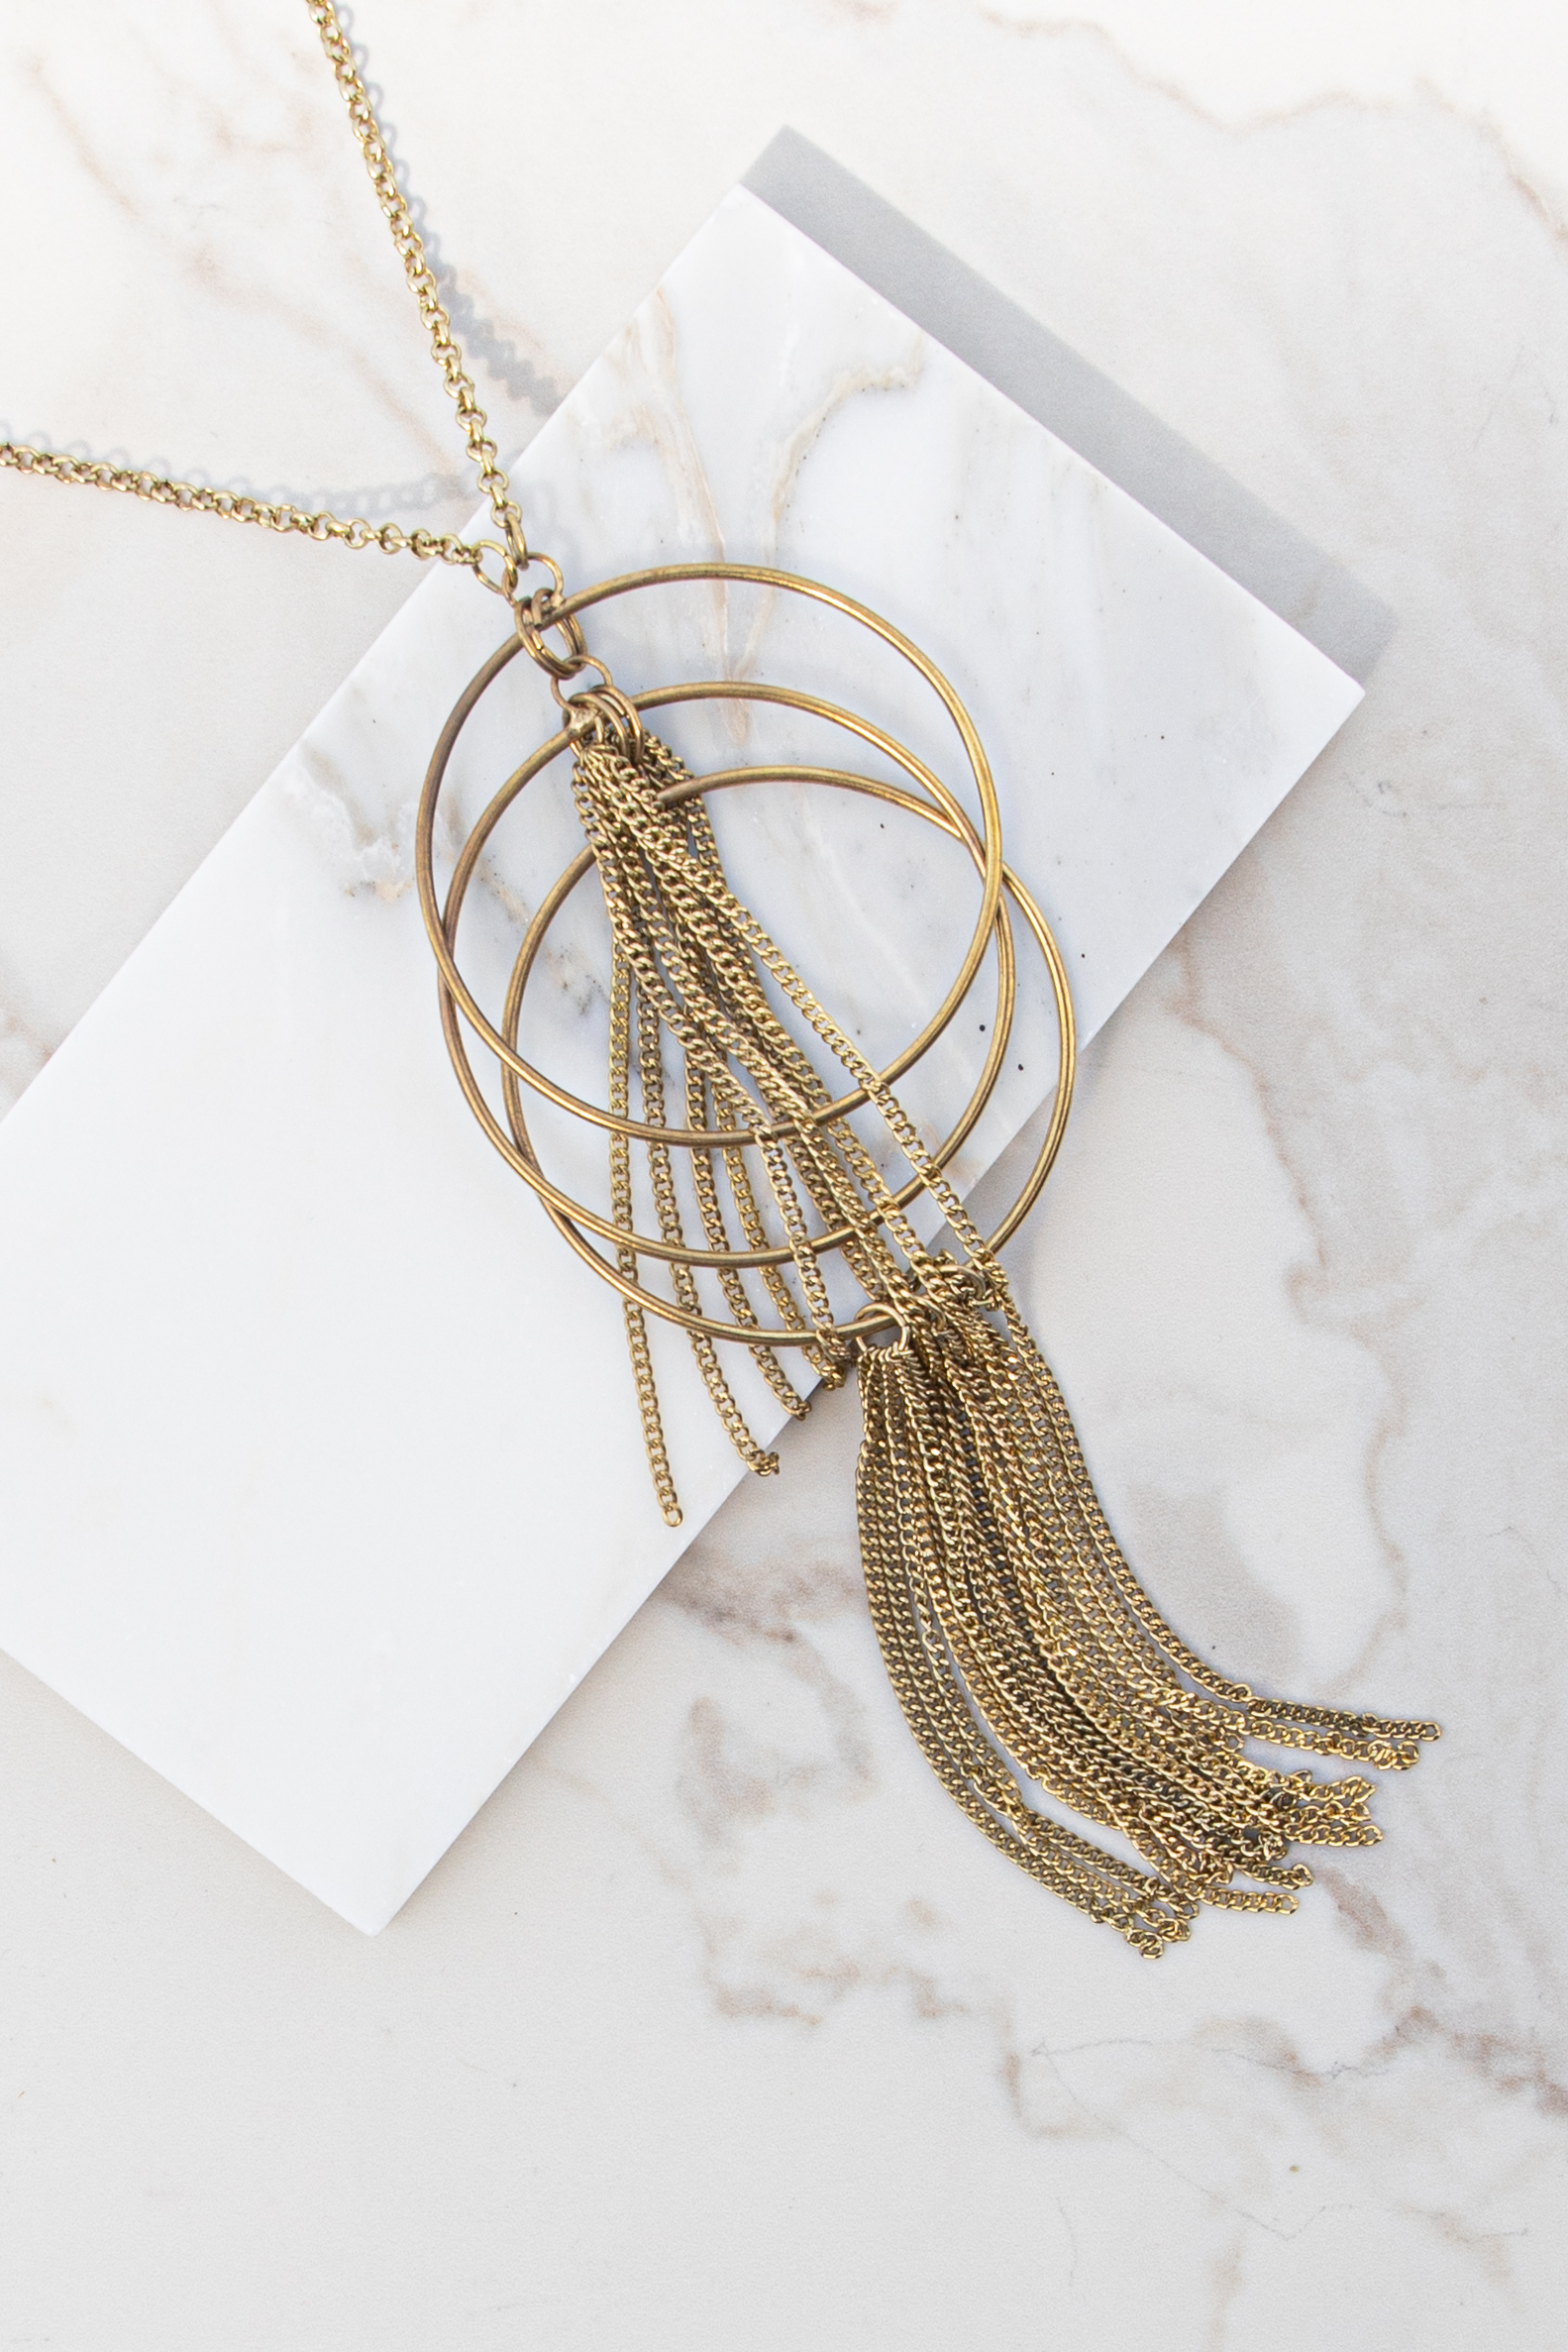 Antique Gold Long Necklace with Layered Circle Pendant